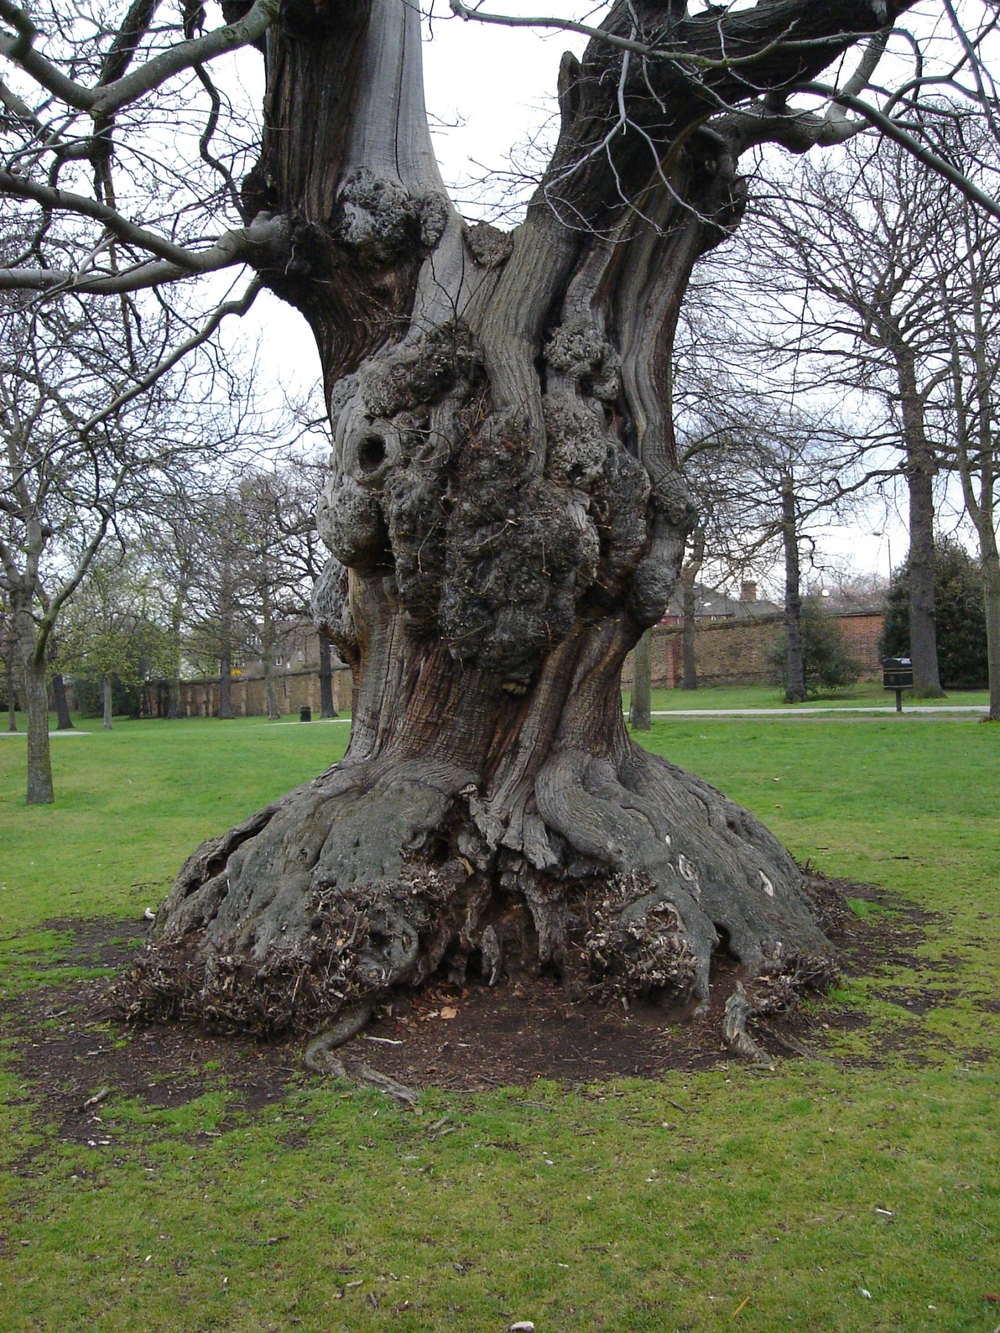 These were the trees we knew back in the U.K